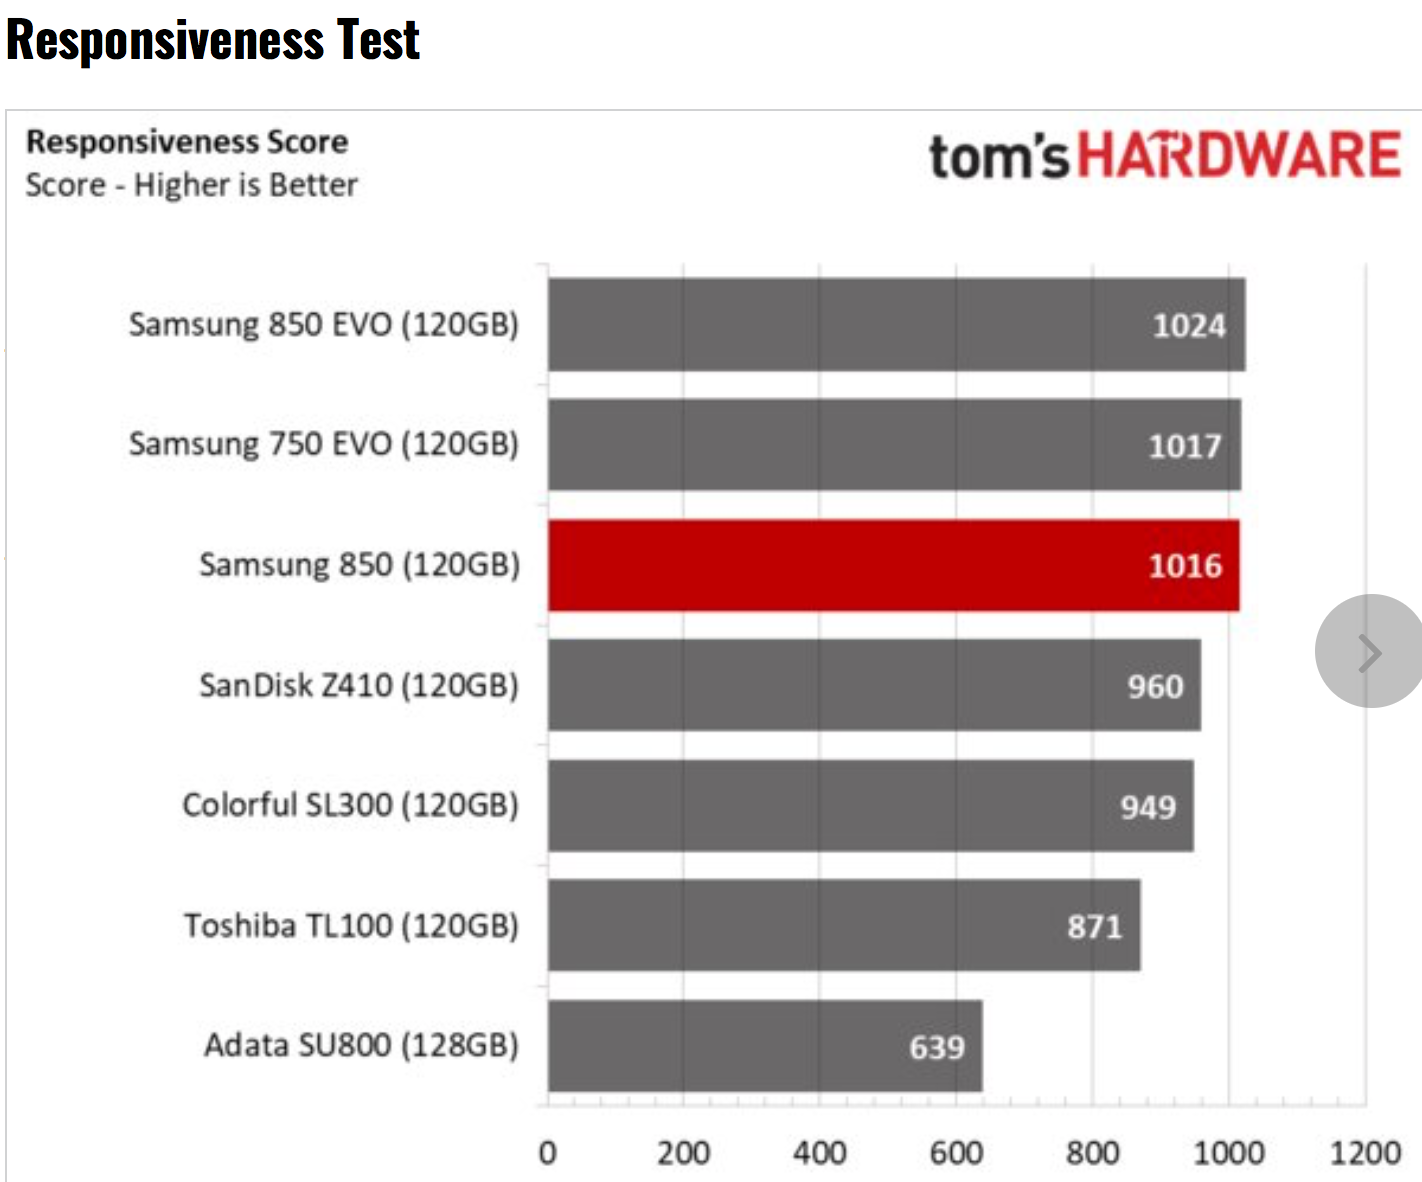 Tom's Hardware – Samsung 850 SSD Review using BAPCo's SYSmark 2014 SE Responsiveness + Energy Benchmark Test